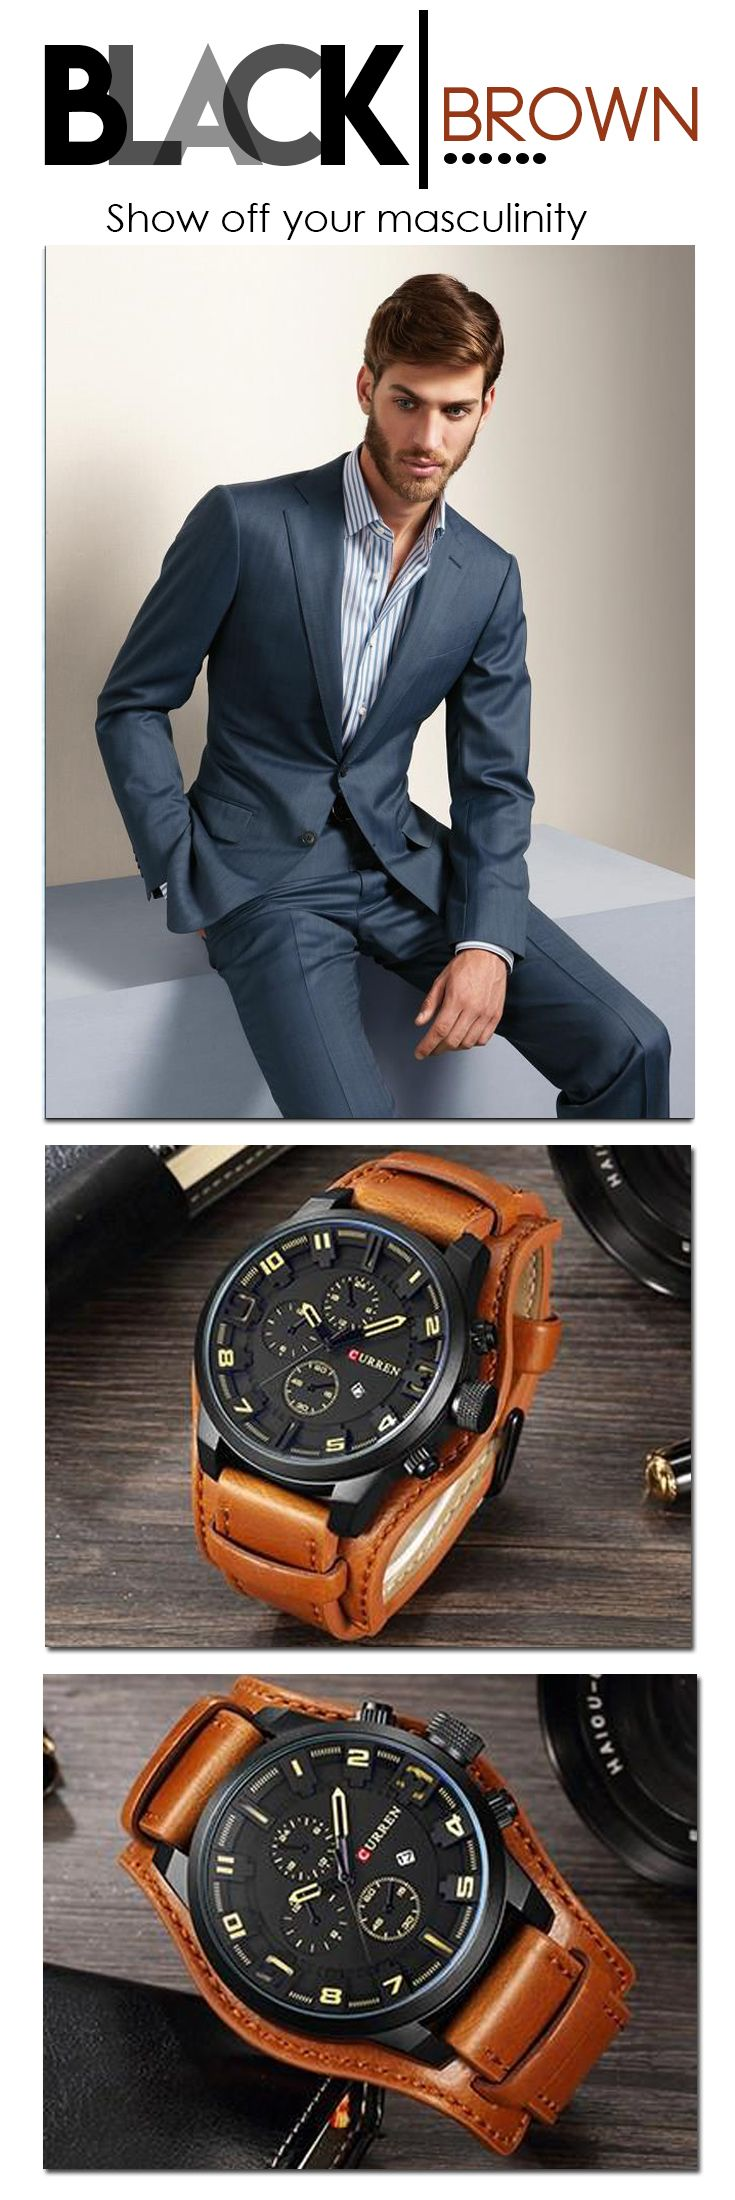 The Luxury business watch you need - we all have the same amount of time, use every second to look good and fulfill your desires------------------  2018 curren Watches Men Watch Luxury Famous Brand Chronograph Men Watches Male Clock Sports Leather Quartz-Watch Reloj Hombre business watch casual fashion